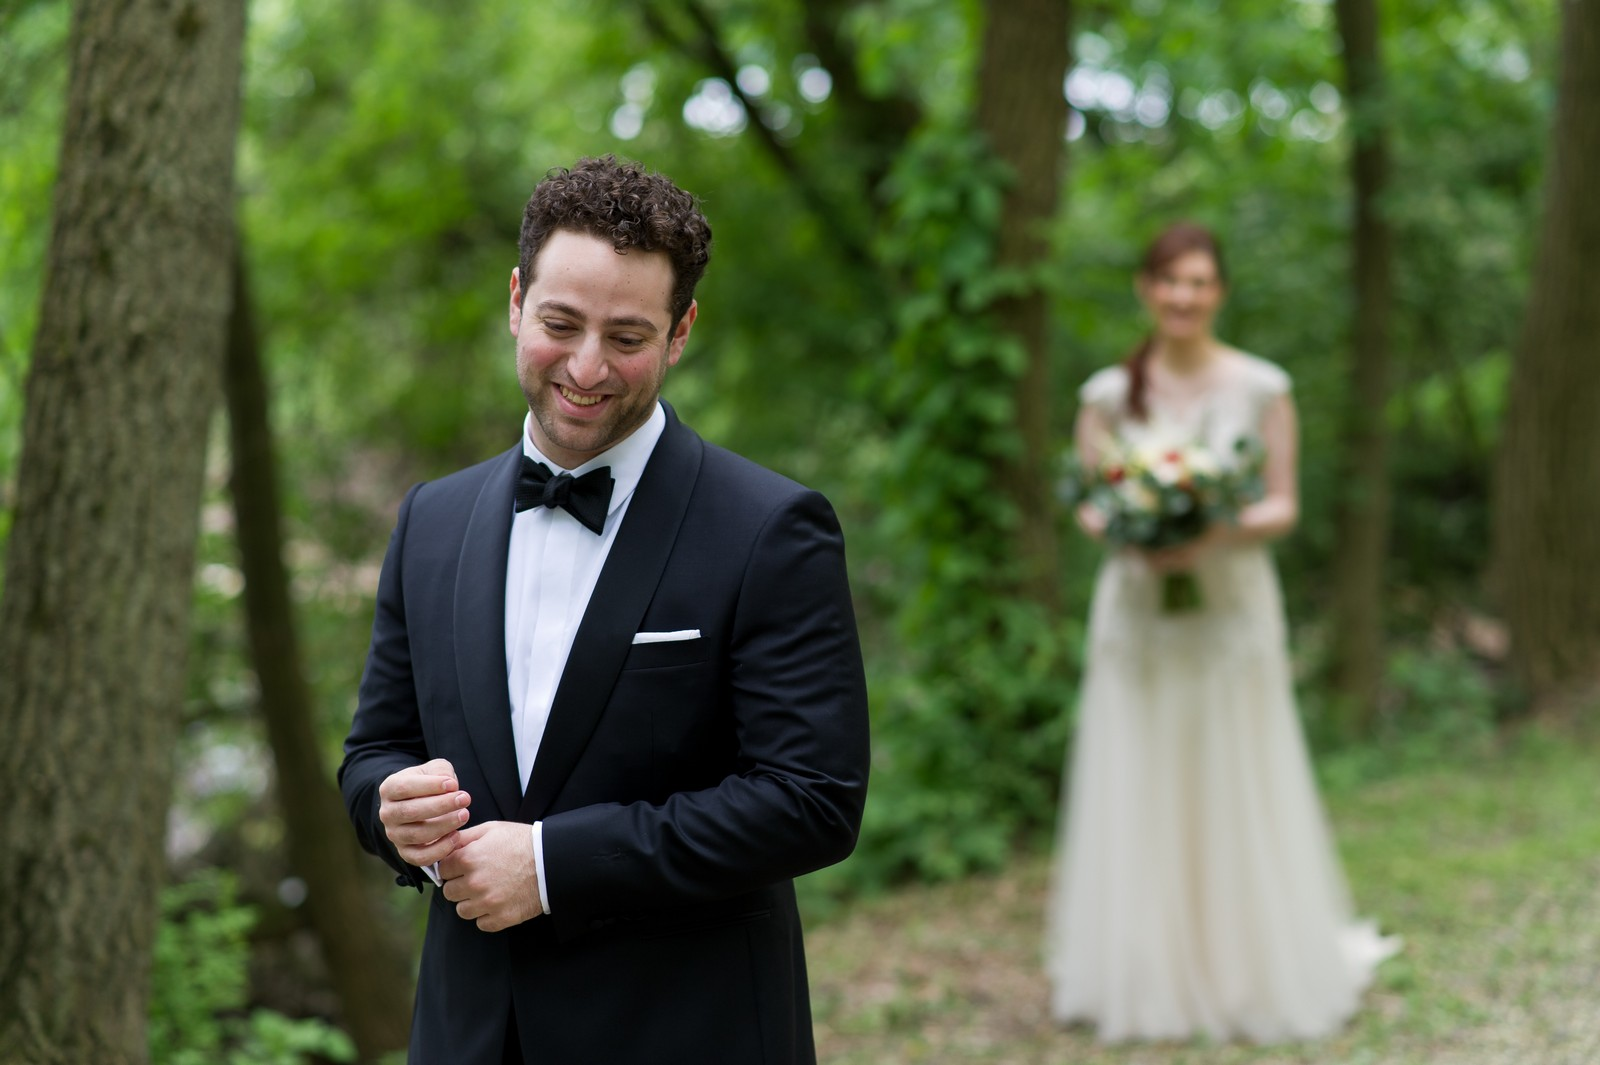 Yoey and Aaron's Memorial Day Modern Jewish Wedding at Anthony's Pier 9, New Windsor, NY Photos by Chaim Schvarcz first look bride groom gown suit flowers portraits